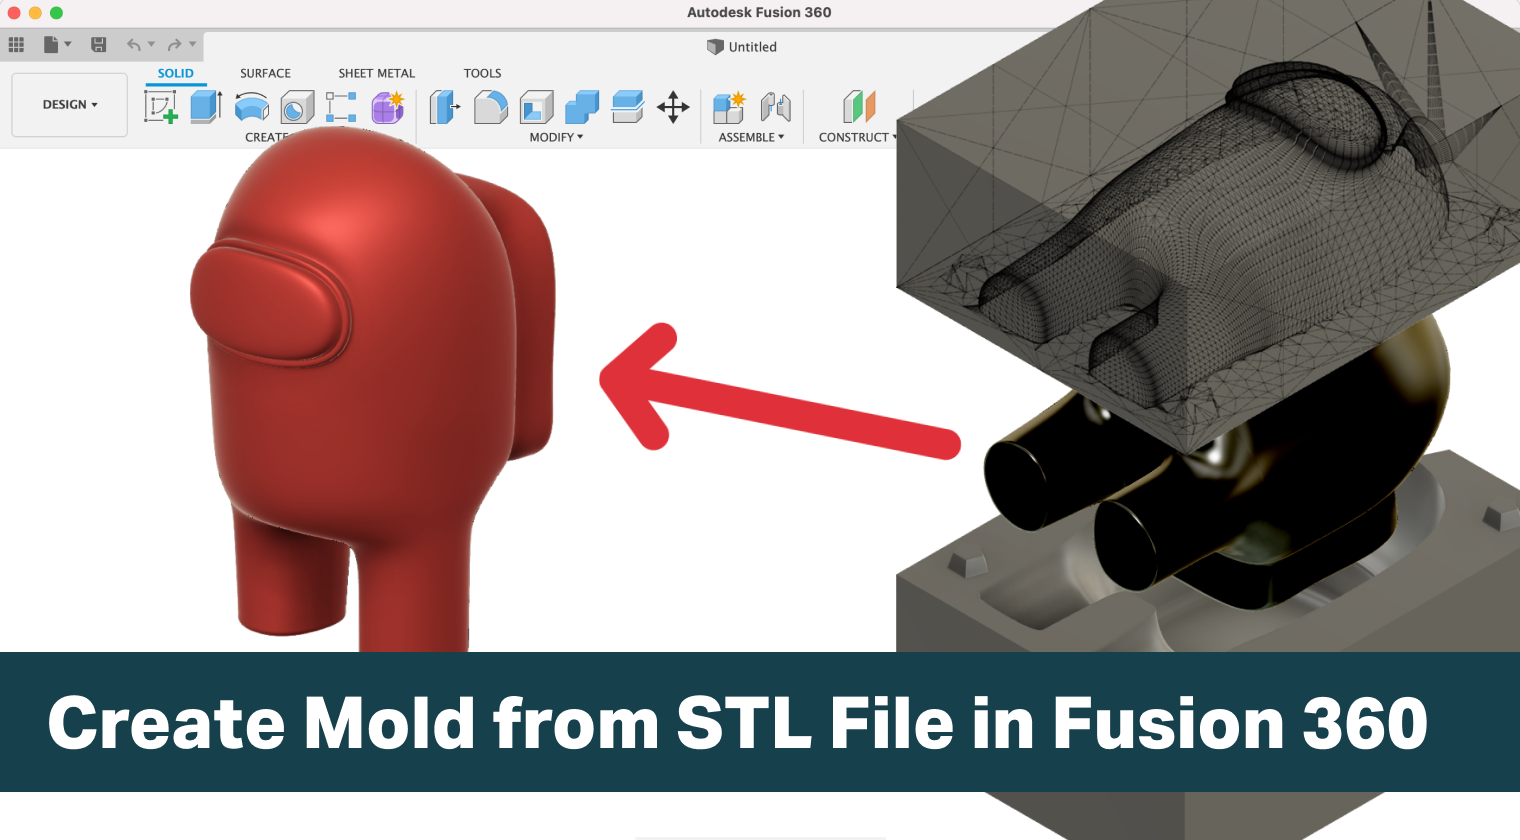 Create Mold from STL File using Fusion 360